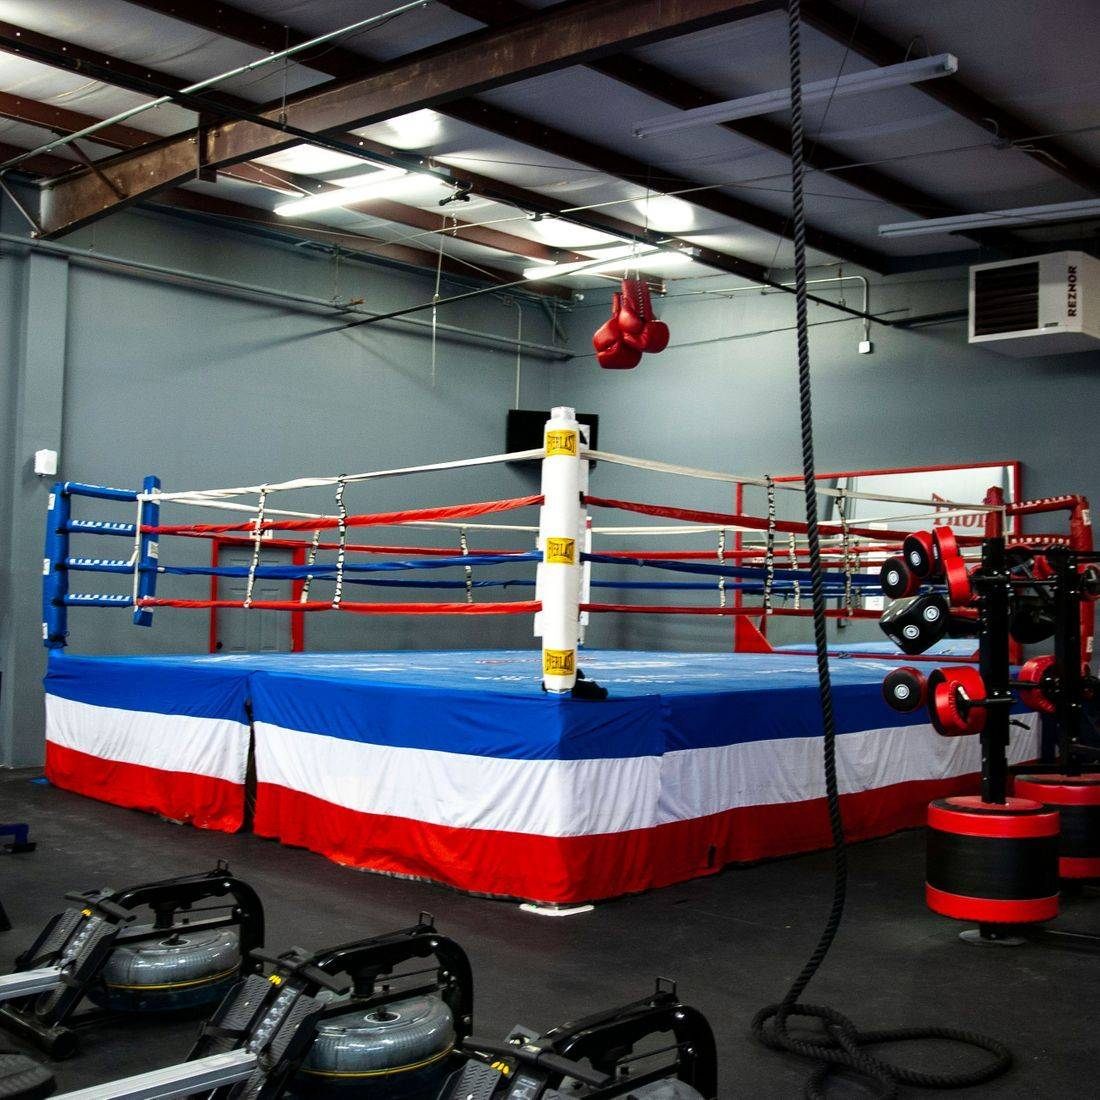 Prize Fight Fitness boxing ring